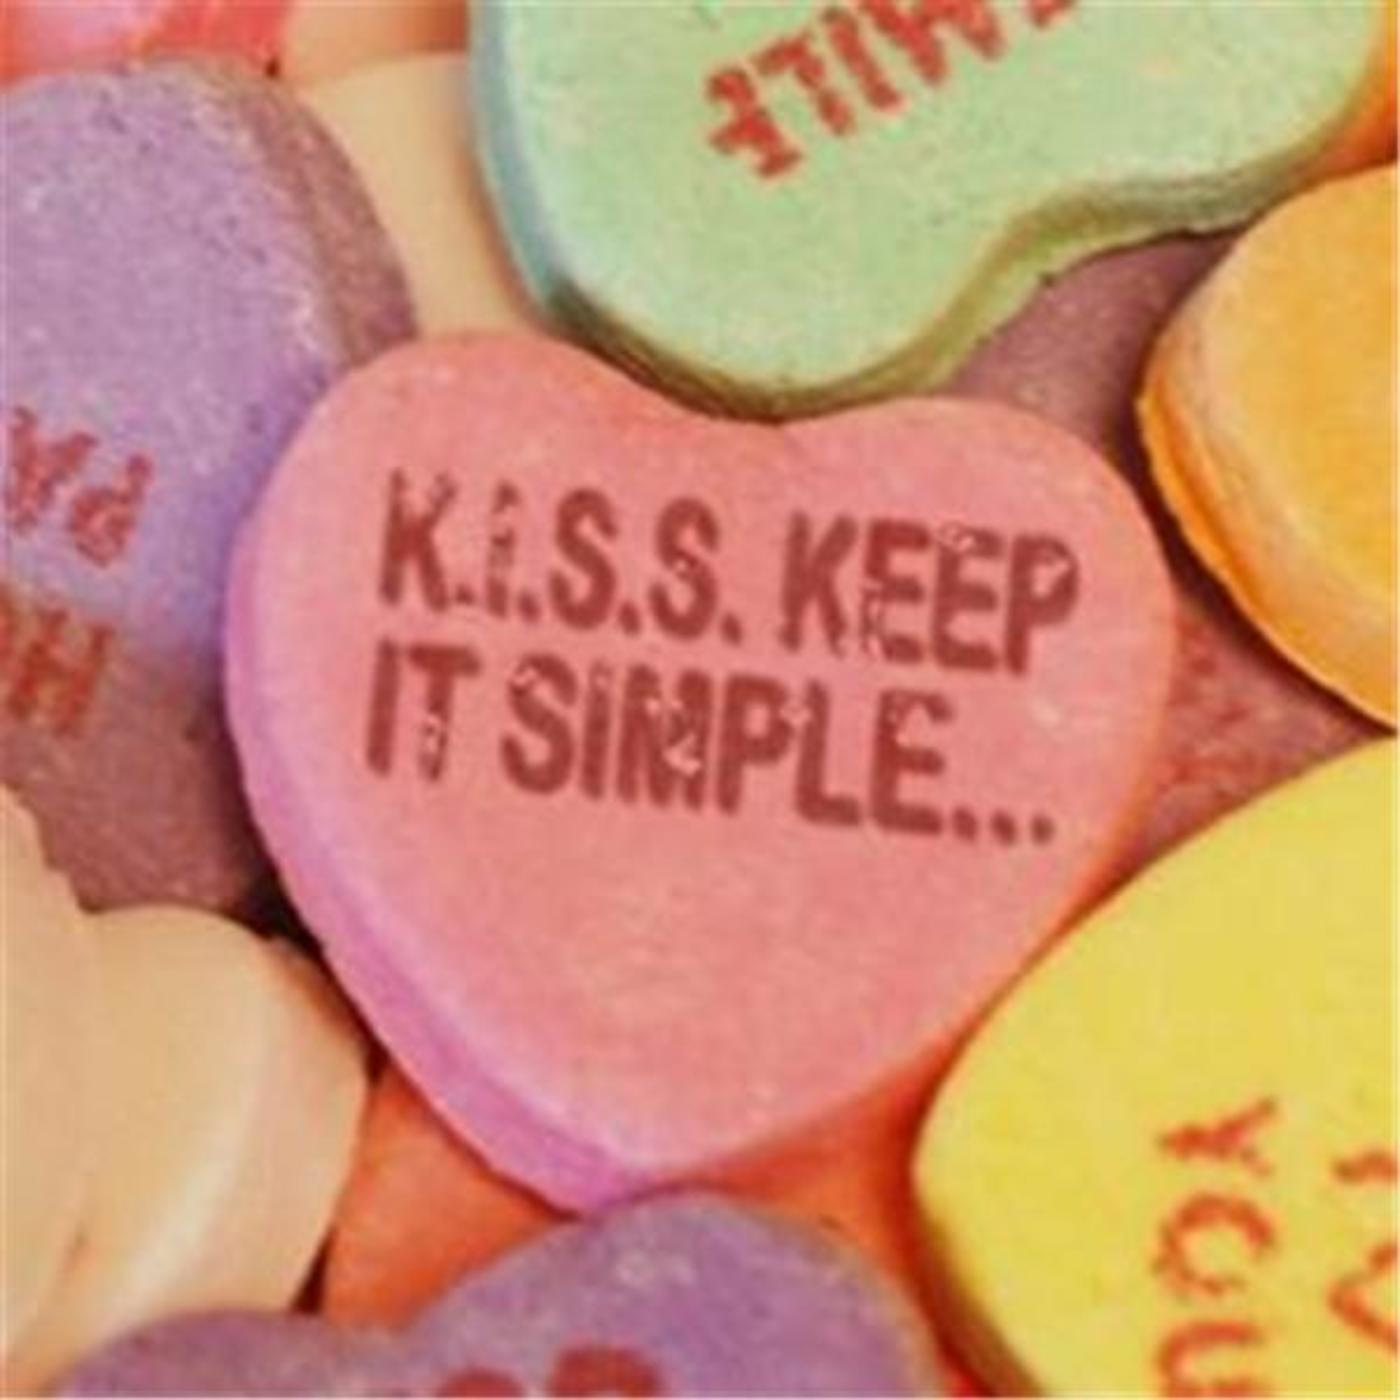 KISS - Keeping It Simple ♥Solutions